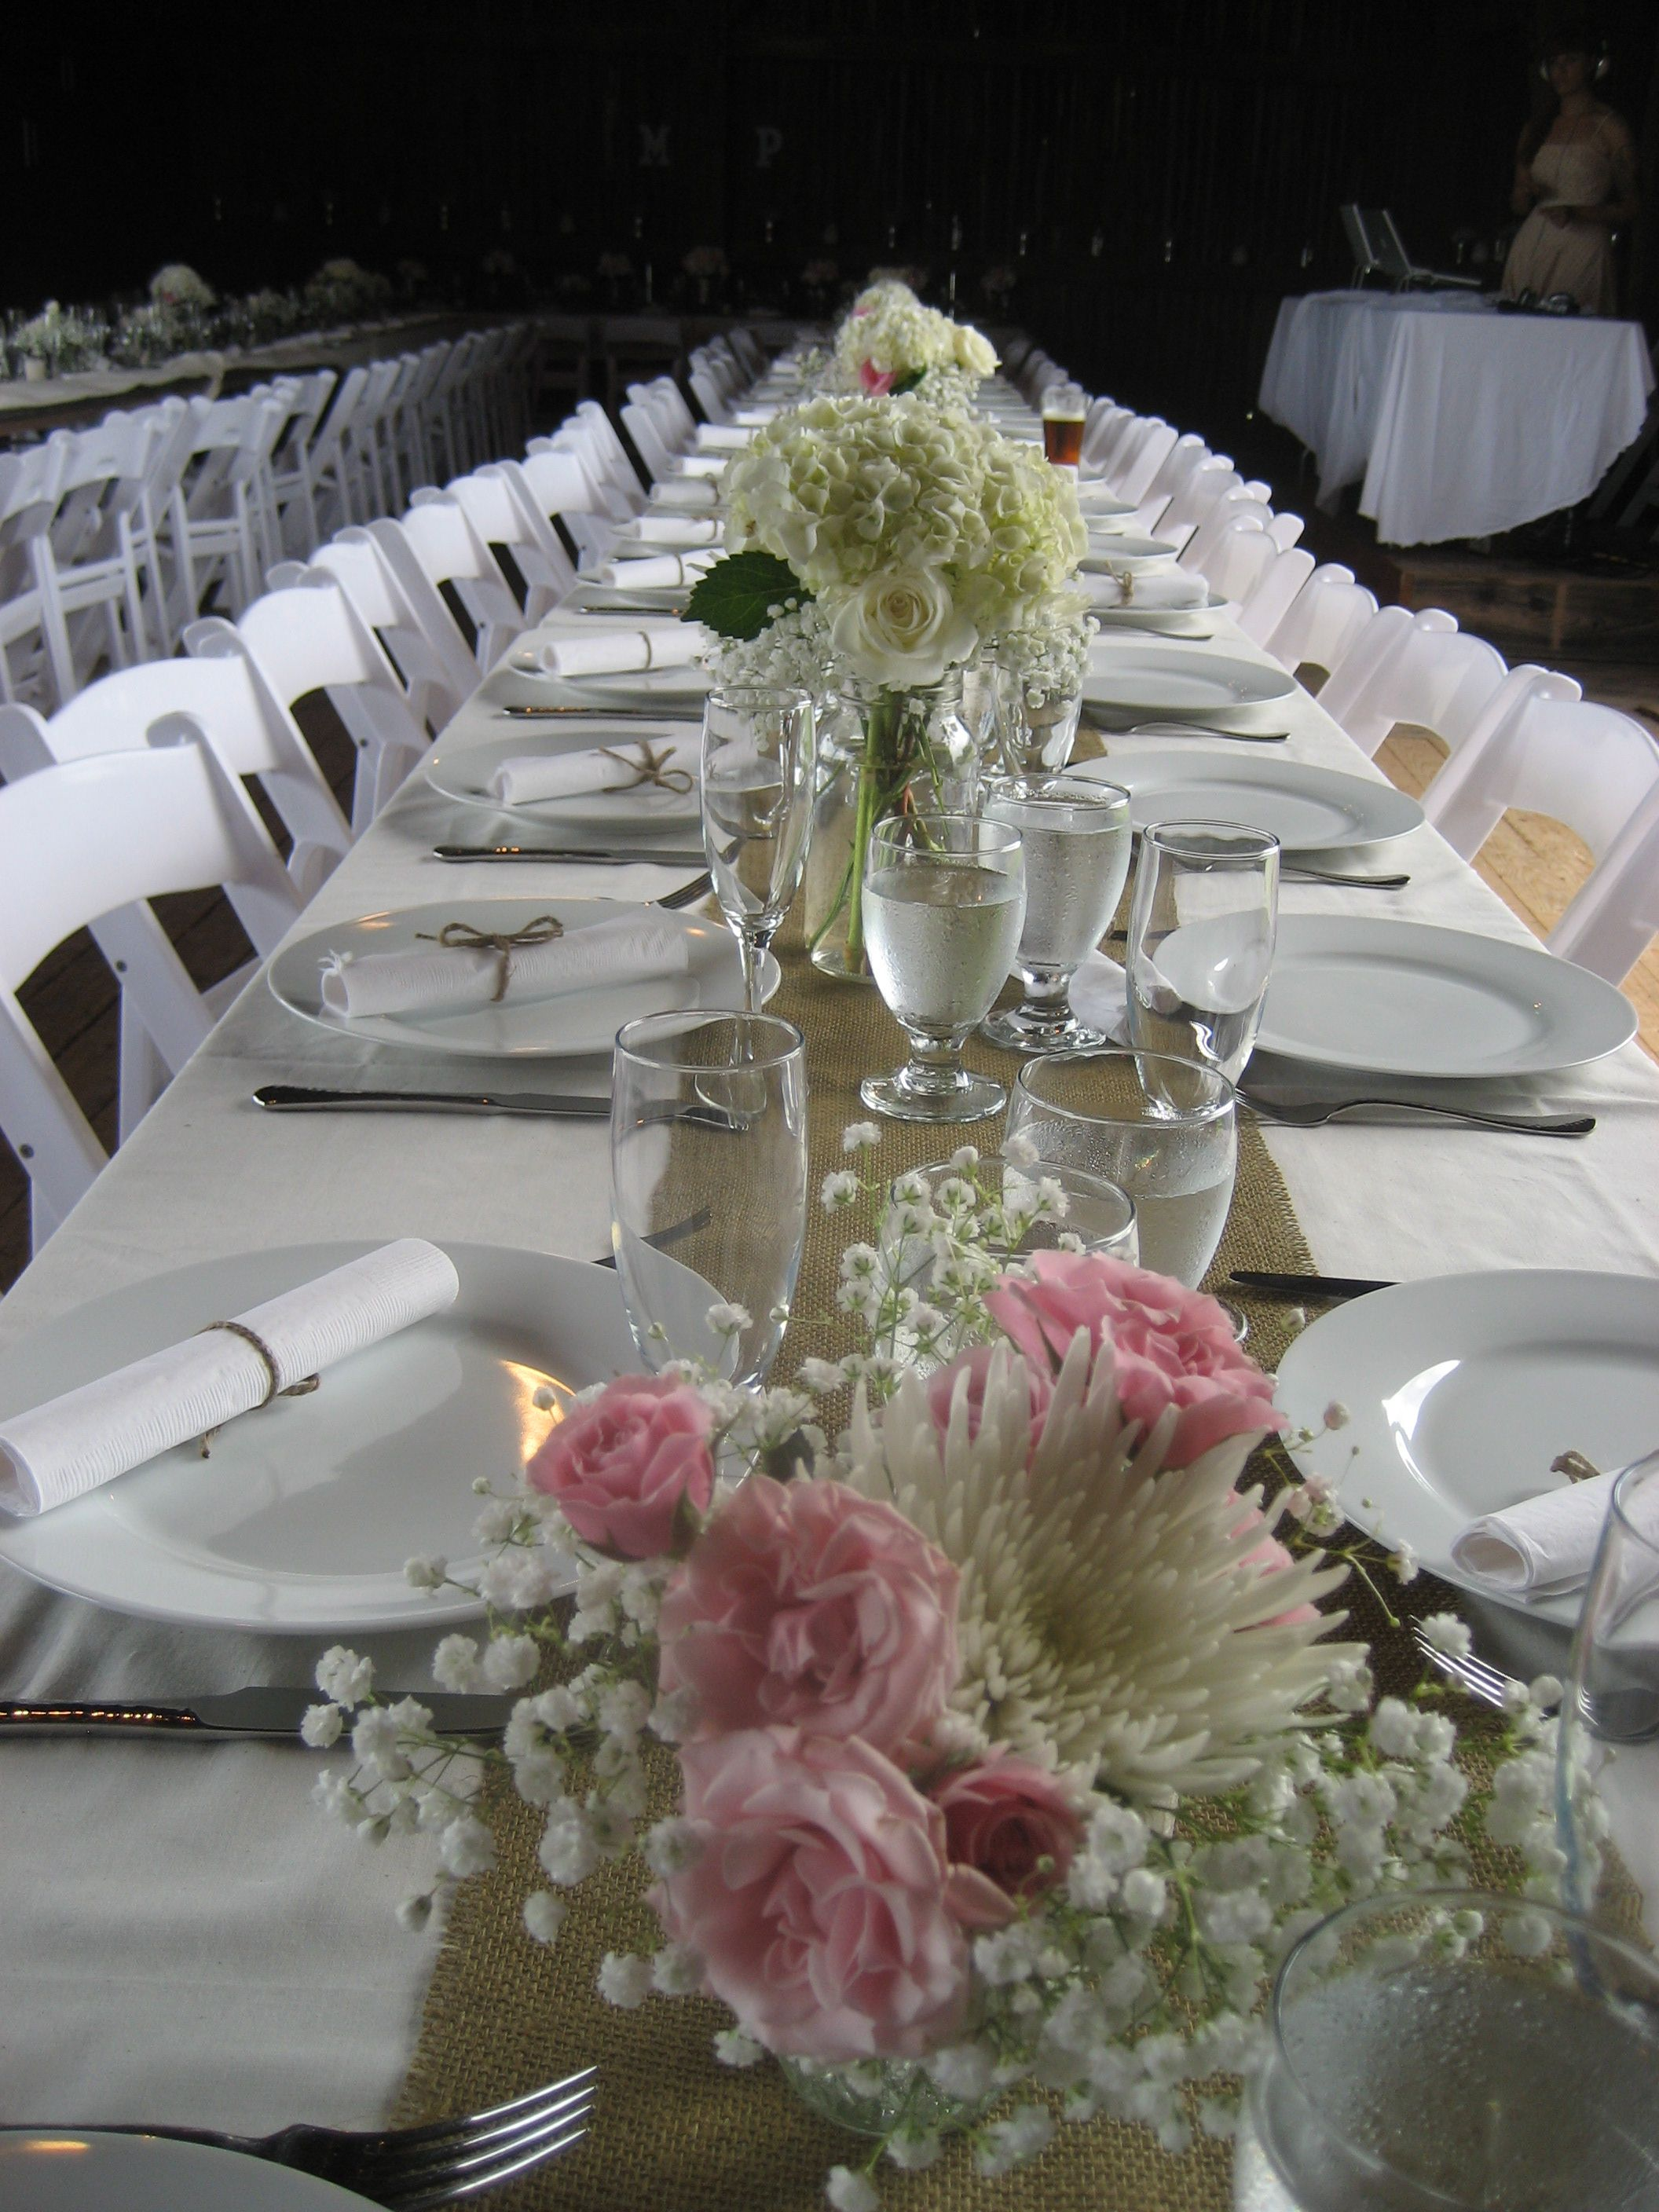 White Tablecloth, Burlap Runner